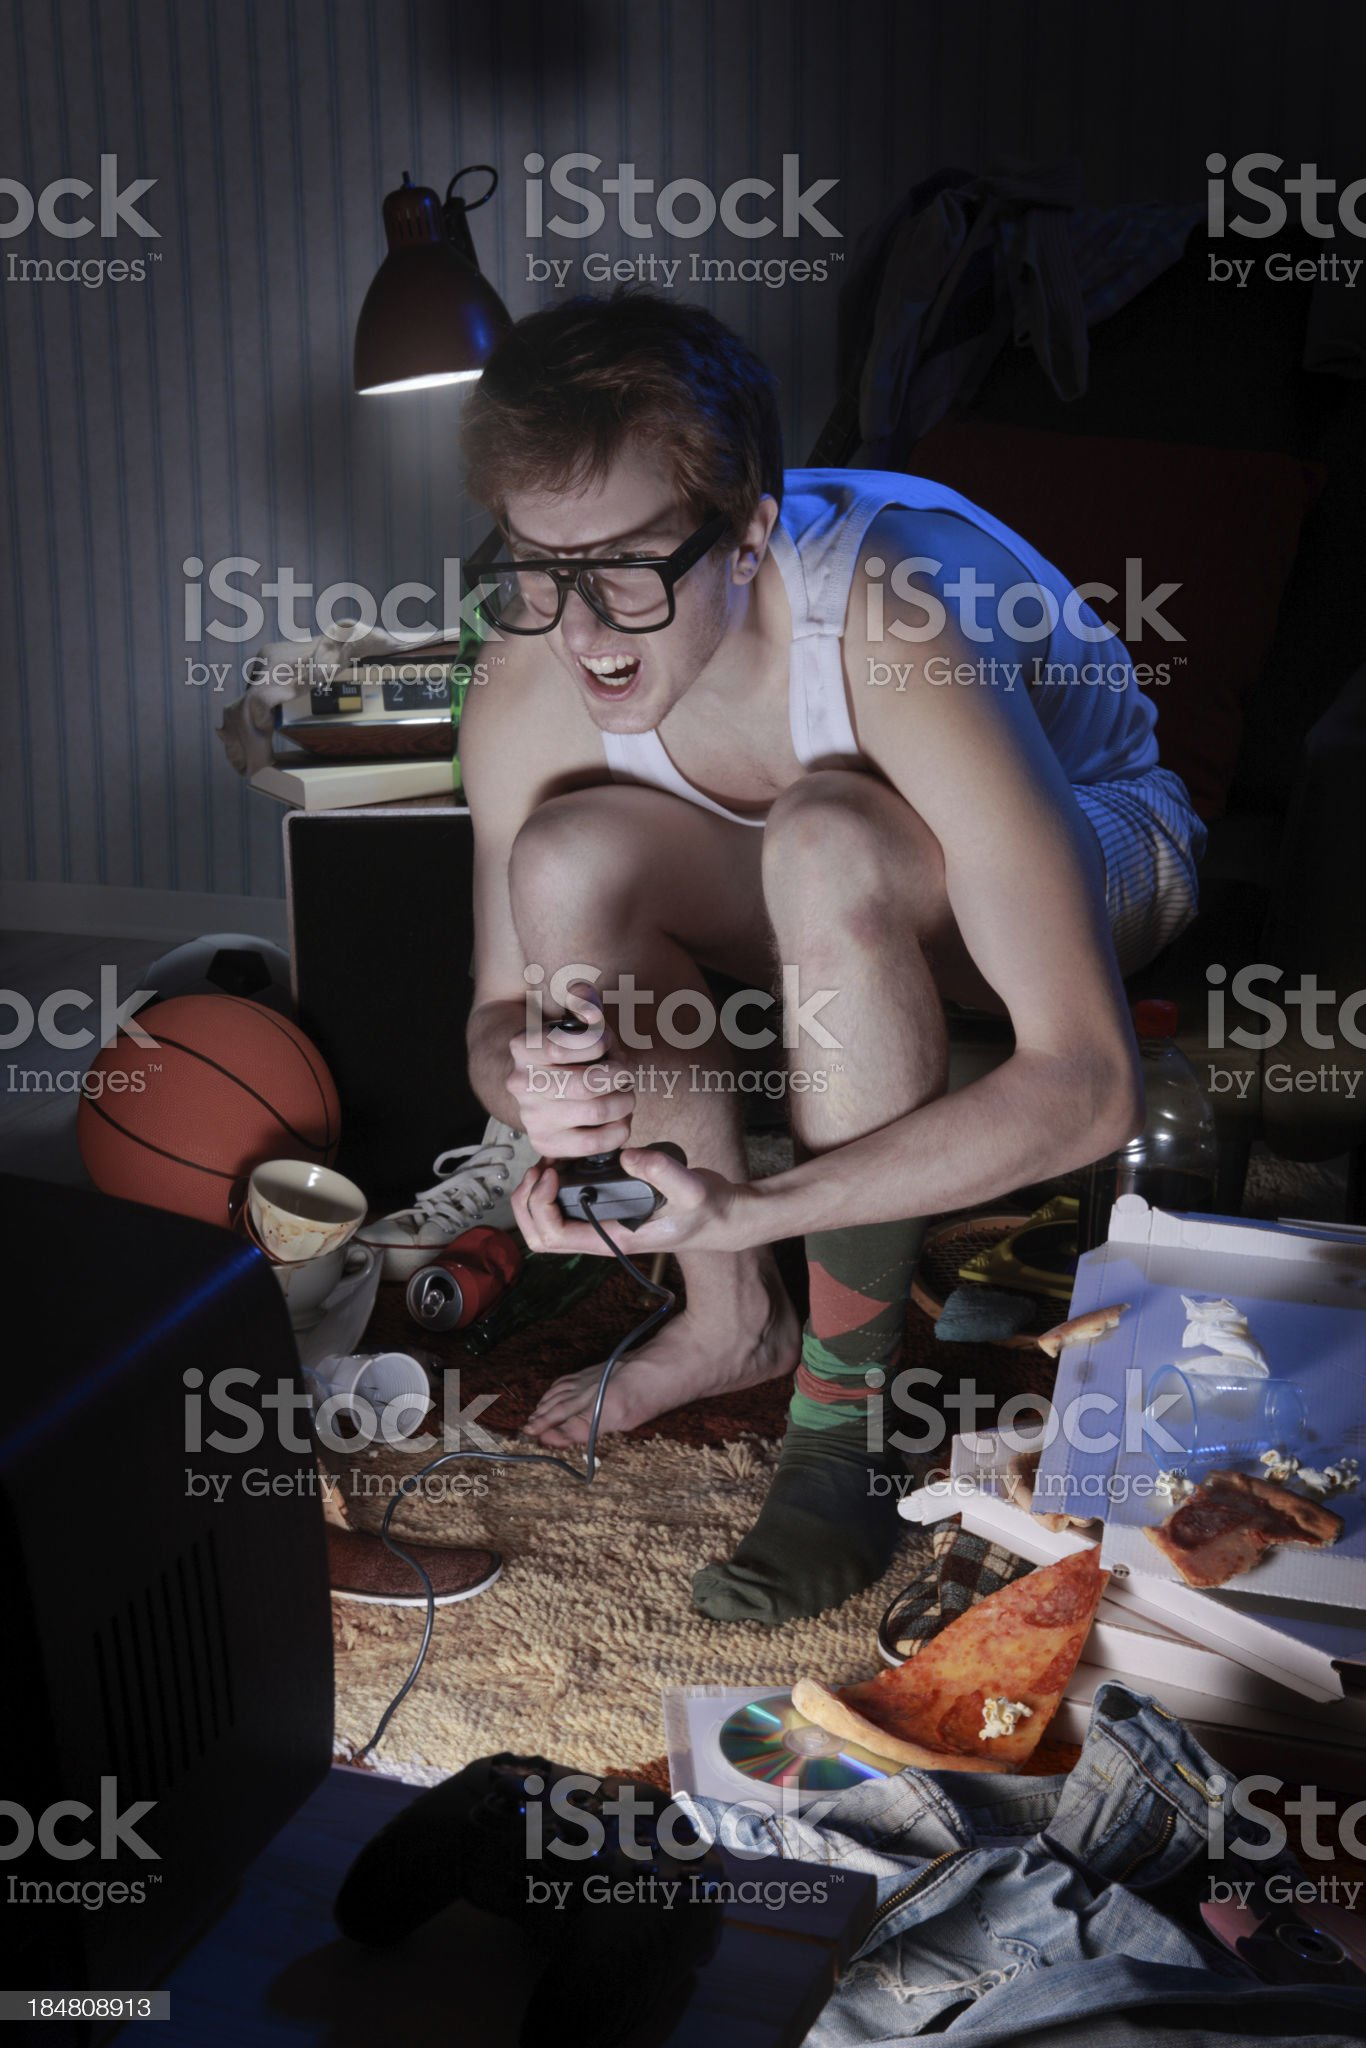 Gamer nerd playing video games on television royalty-free stock photo